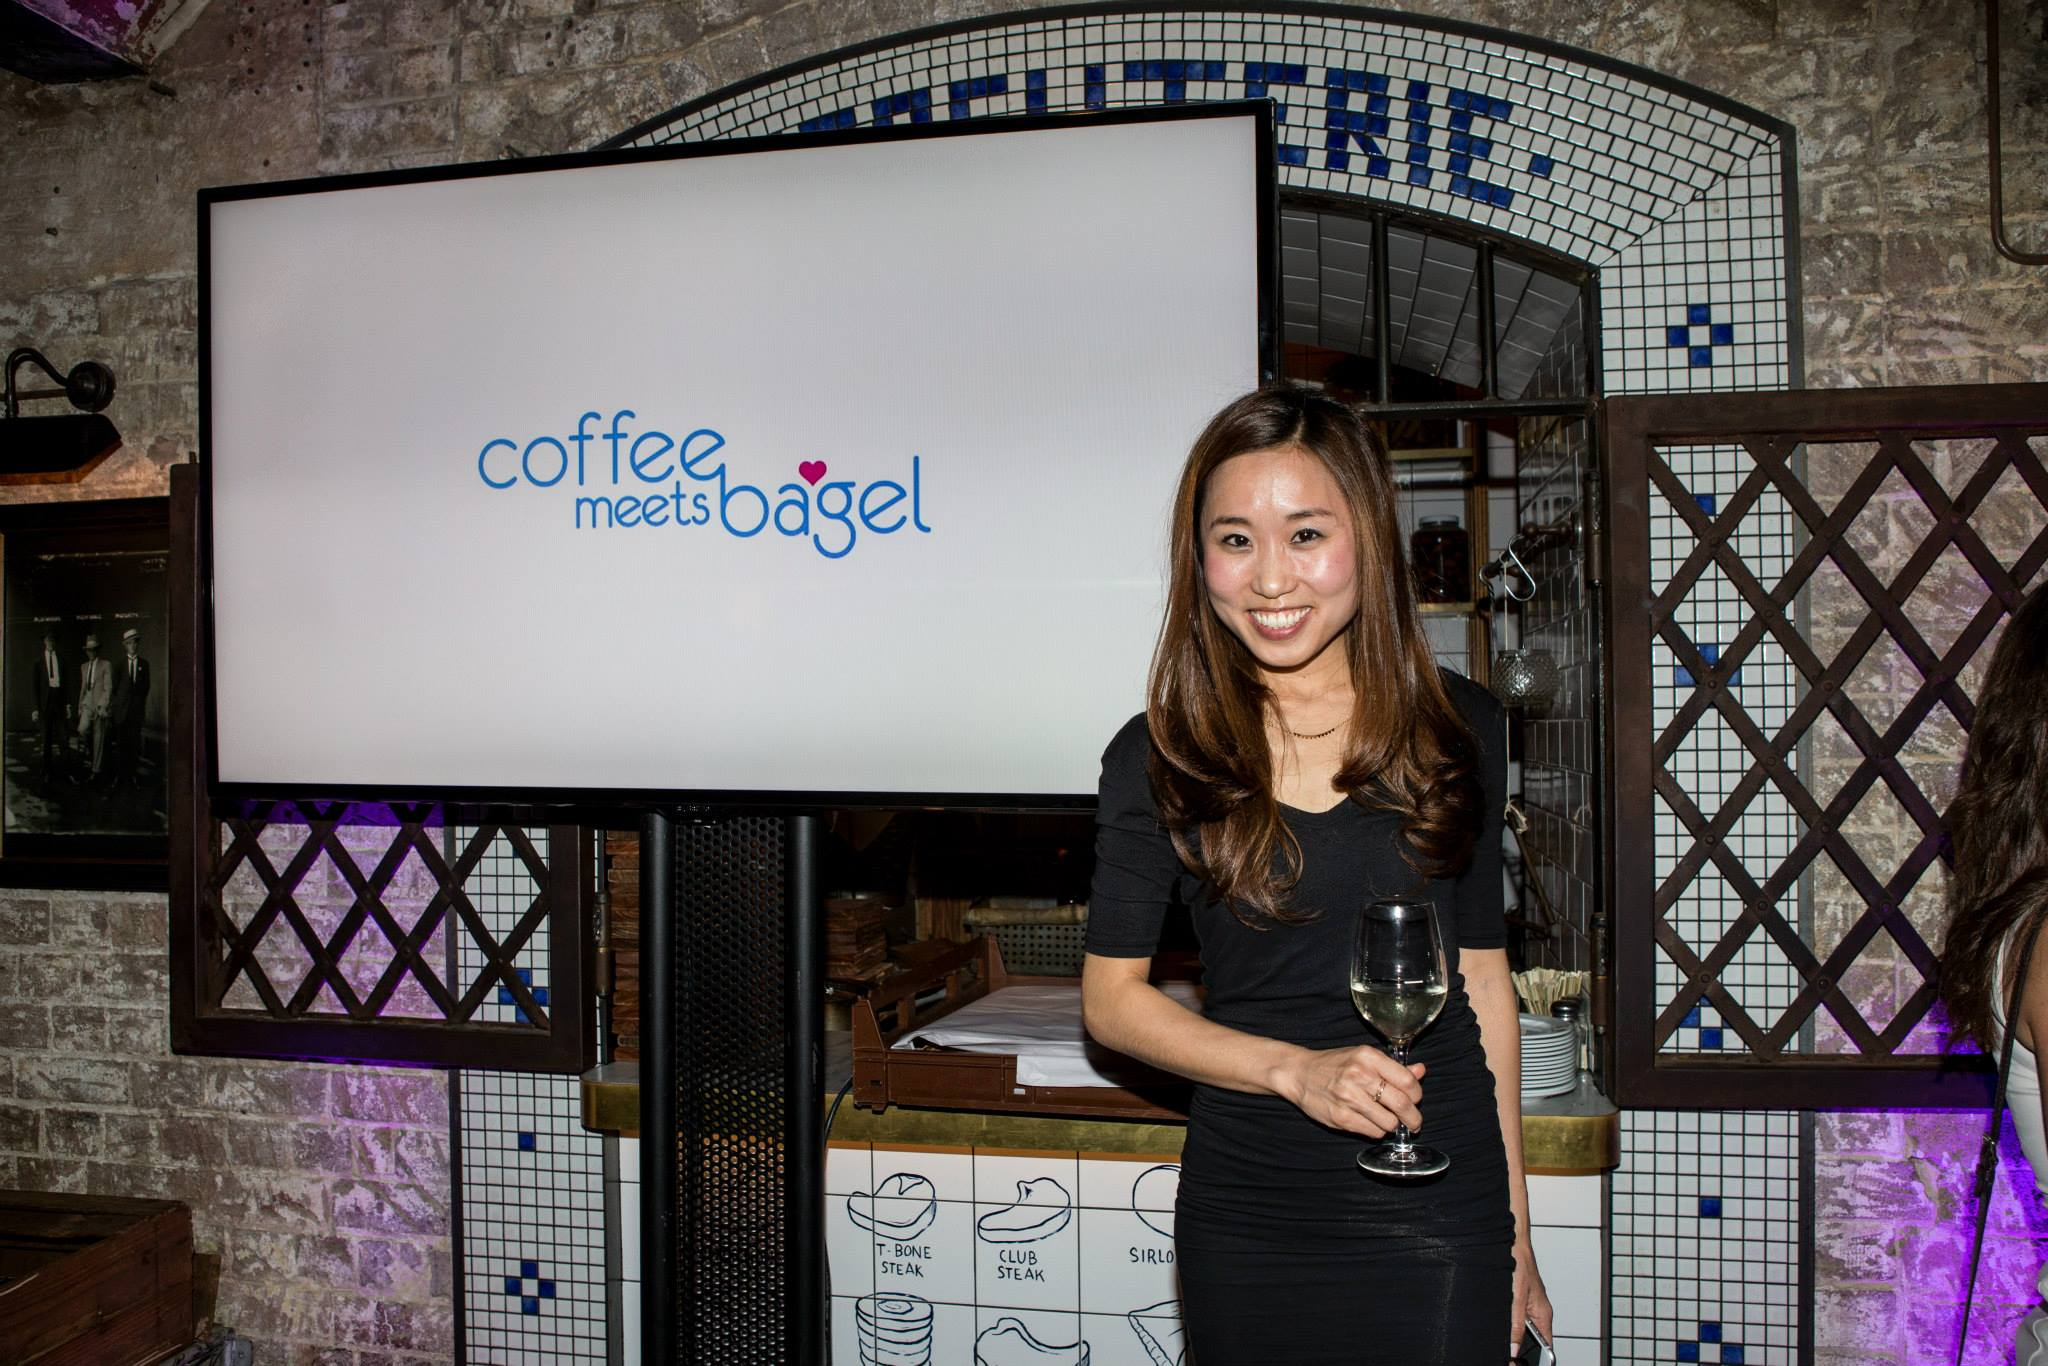 Coffee Meets Bagel Co-CEO Met Partner on Her Own Platform